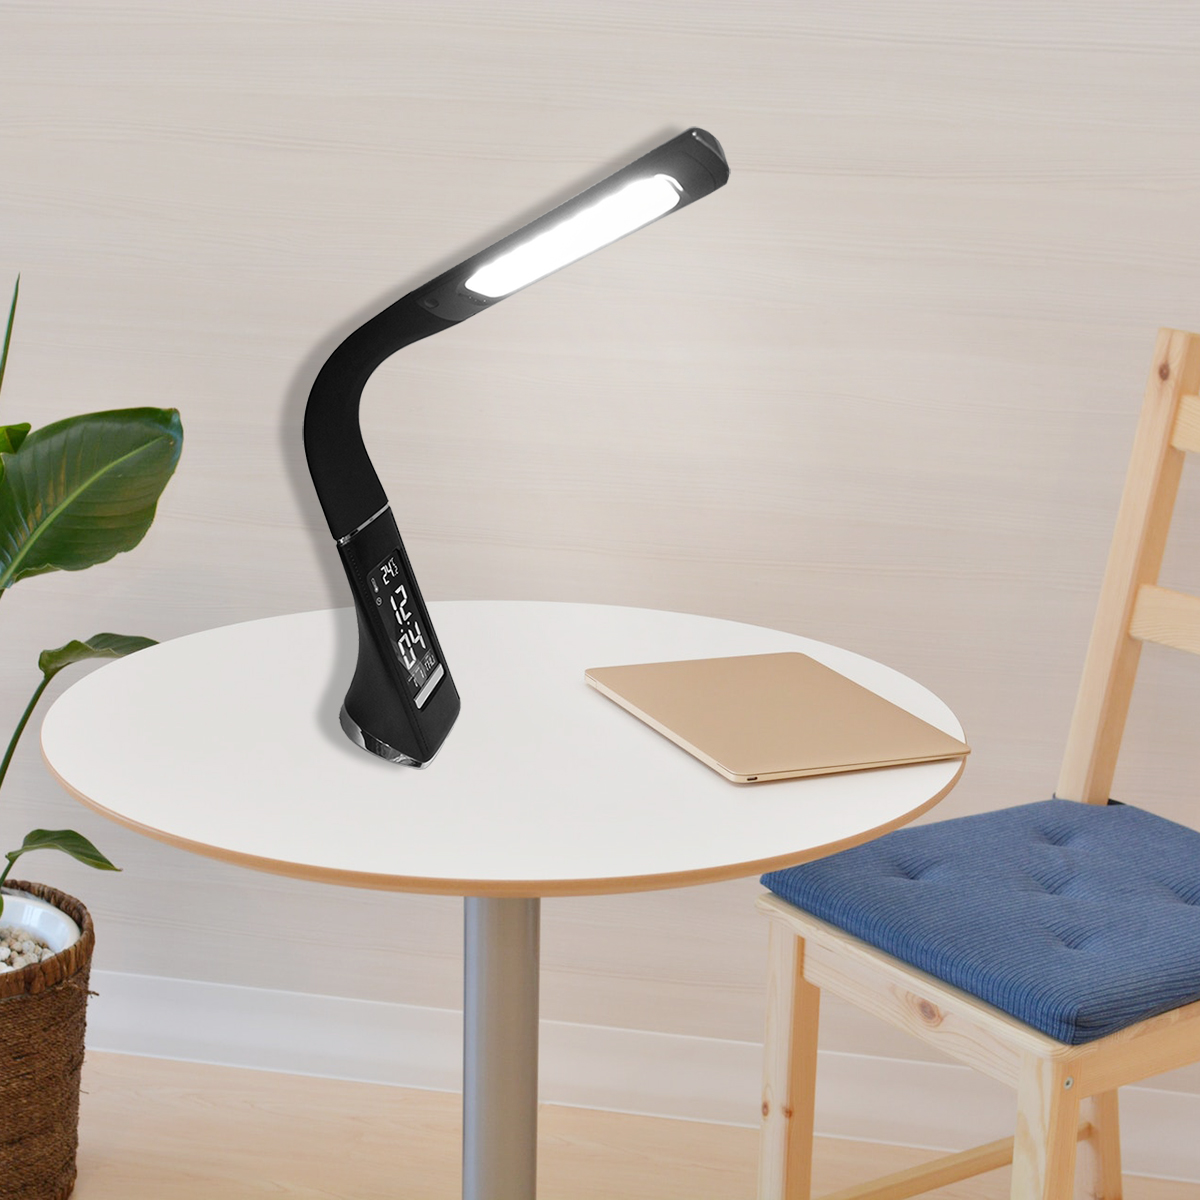 5W LED light dimming touch skin texture reading light with alarm clock black creative business table led lamp table lamp